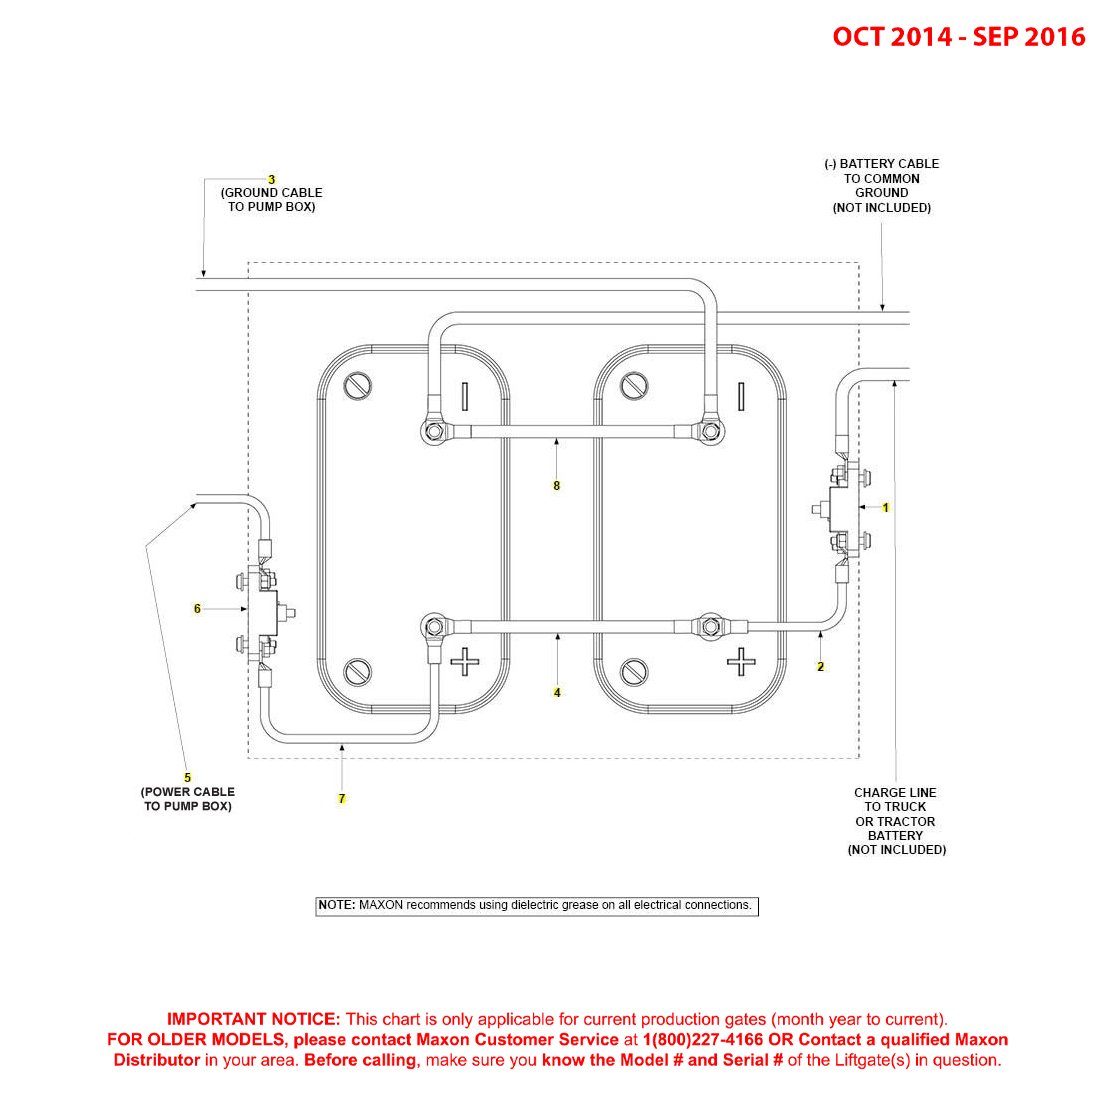 BMR (Oct 2014 - Sep 2016) 12 Volt Battery Connection Diagram